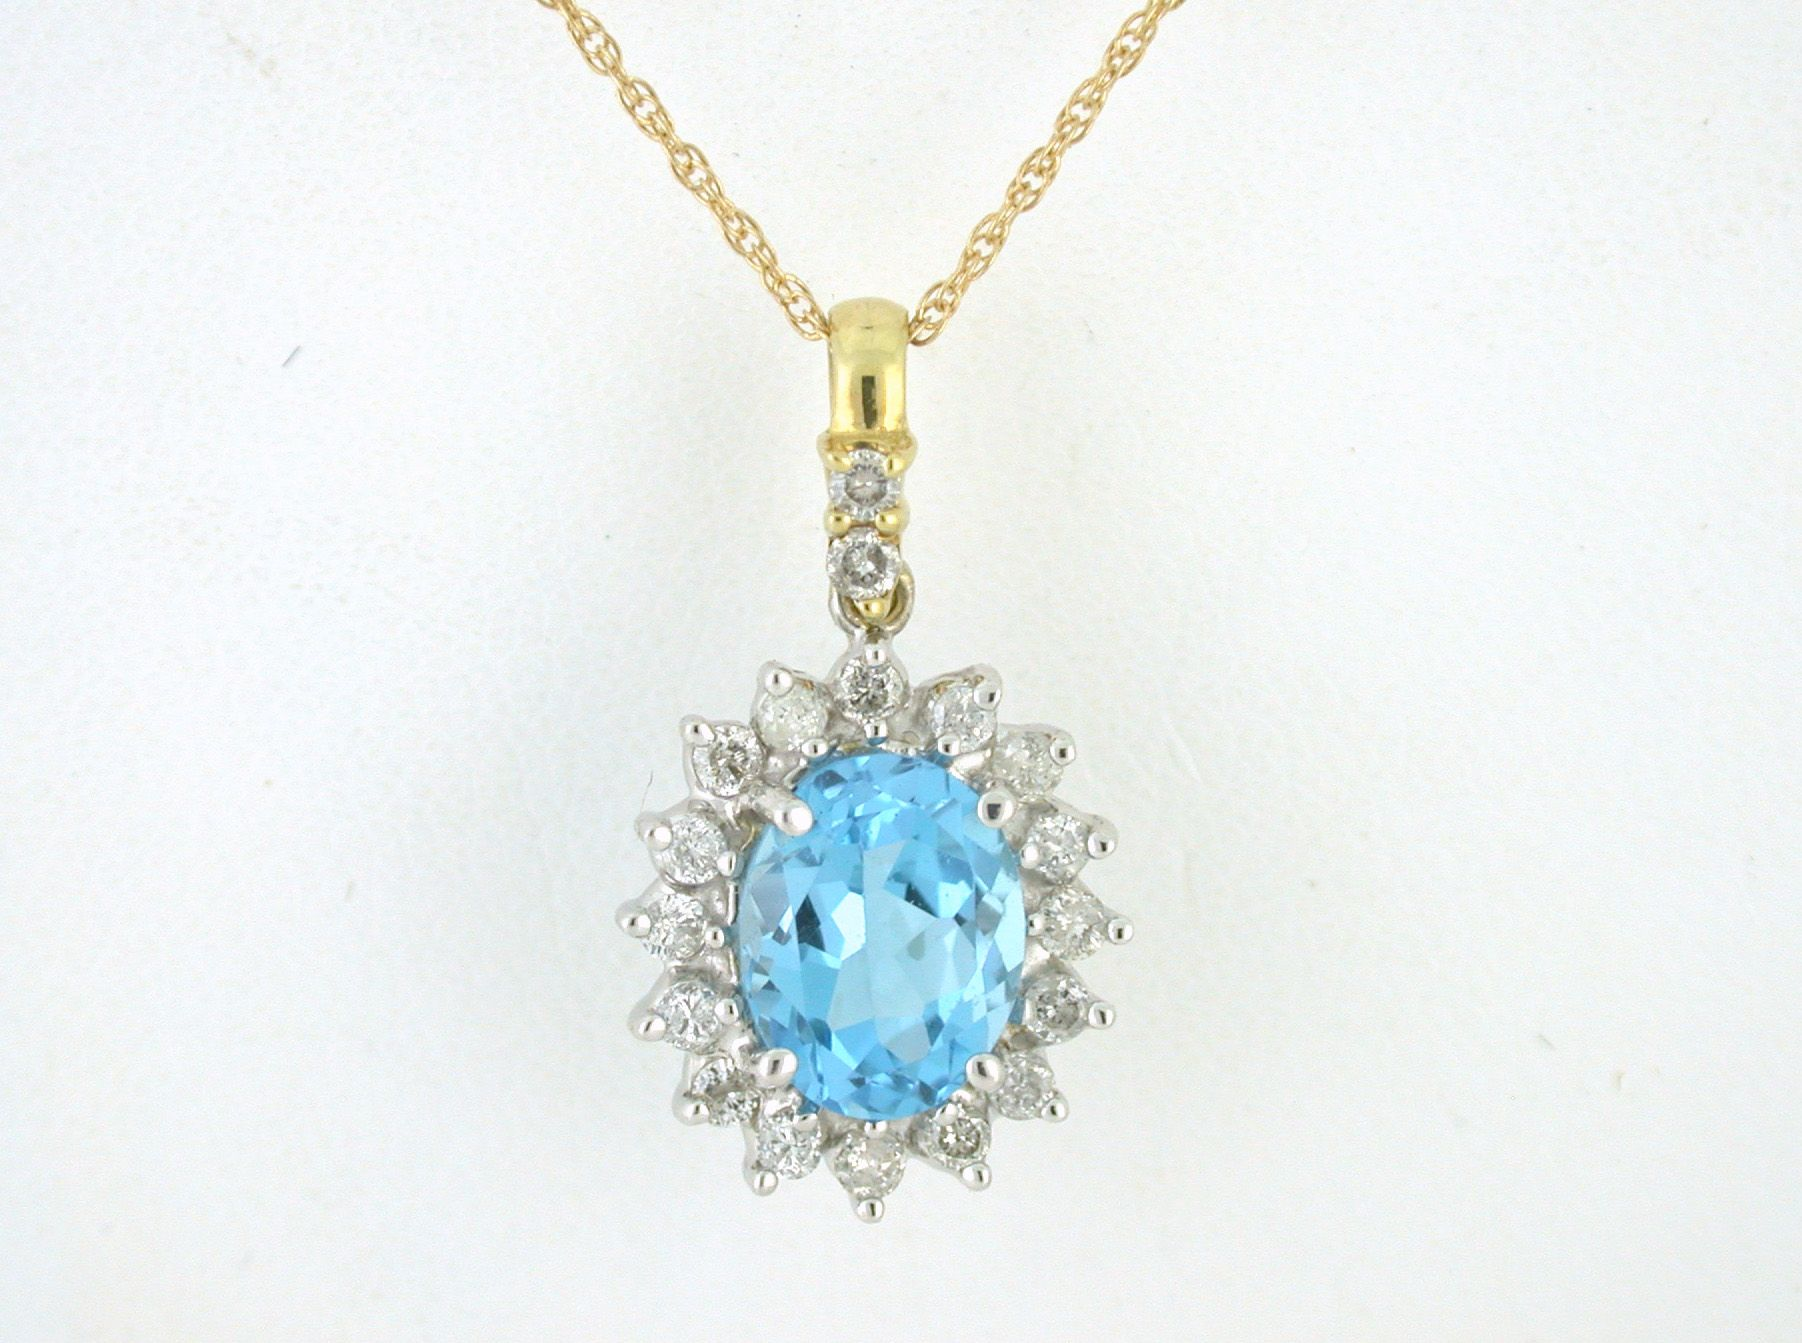 This stunning Swiss blue topaz is accented with .34 total carat weight of diamonds in a 10K pendant. Imagine how lovely it would be around your neck.   Visit www.sharpfacetsgallery.com to see even more choices in topaz as well as many other beautiful gemstones.